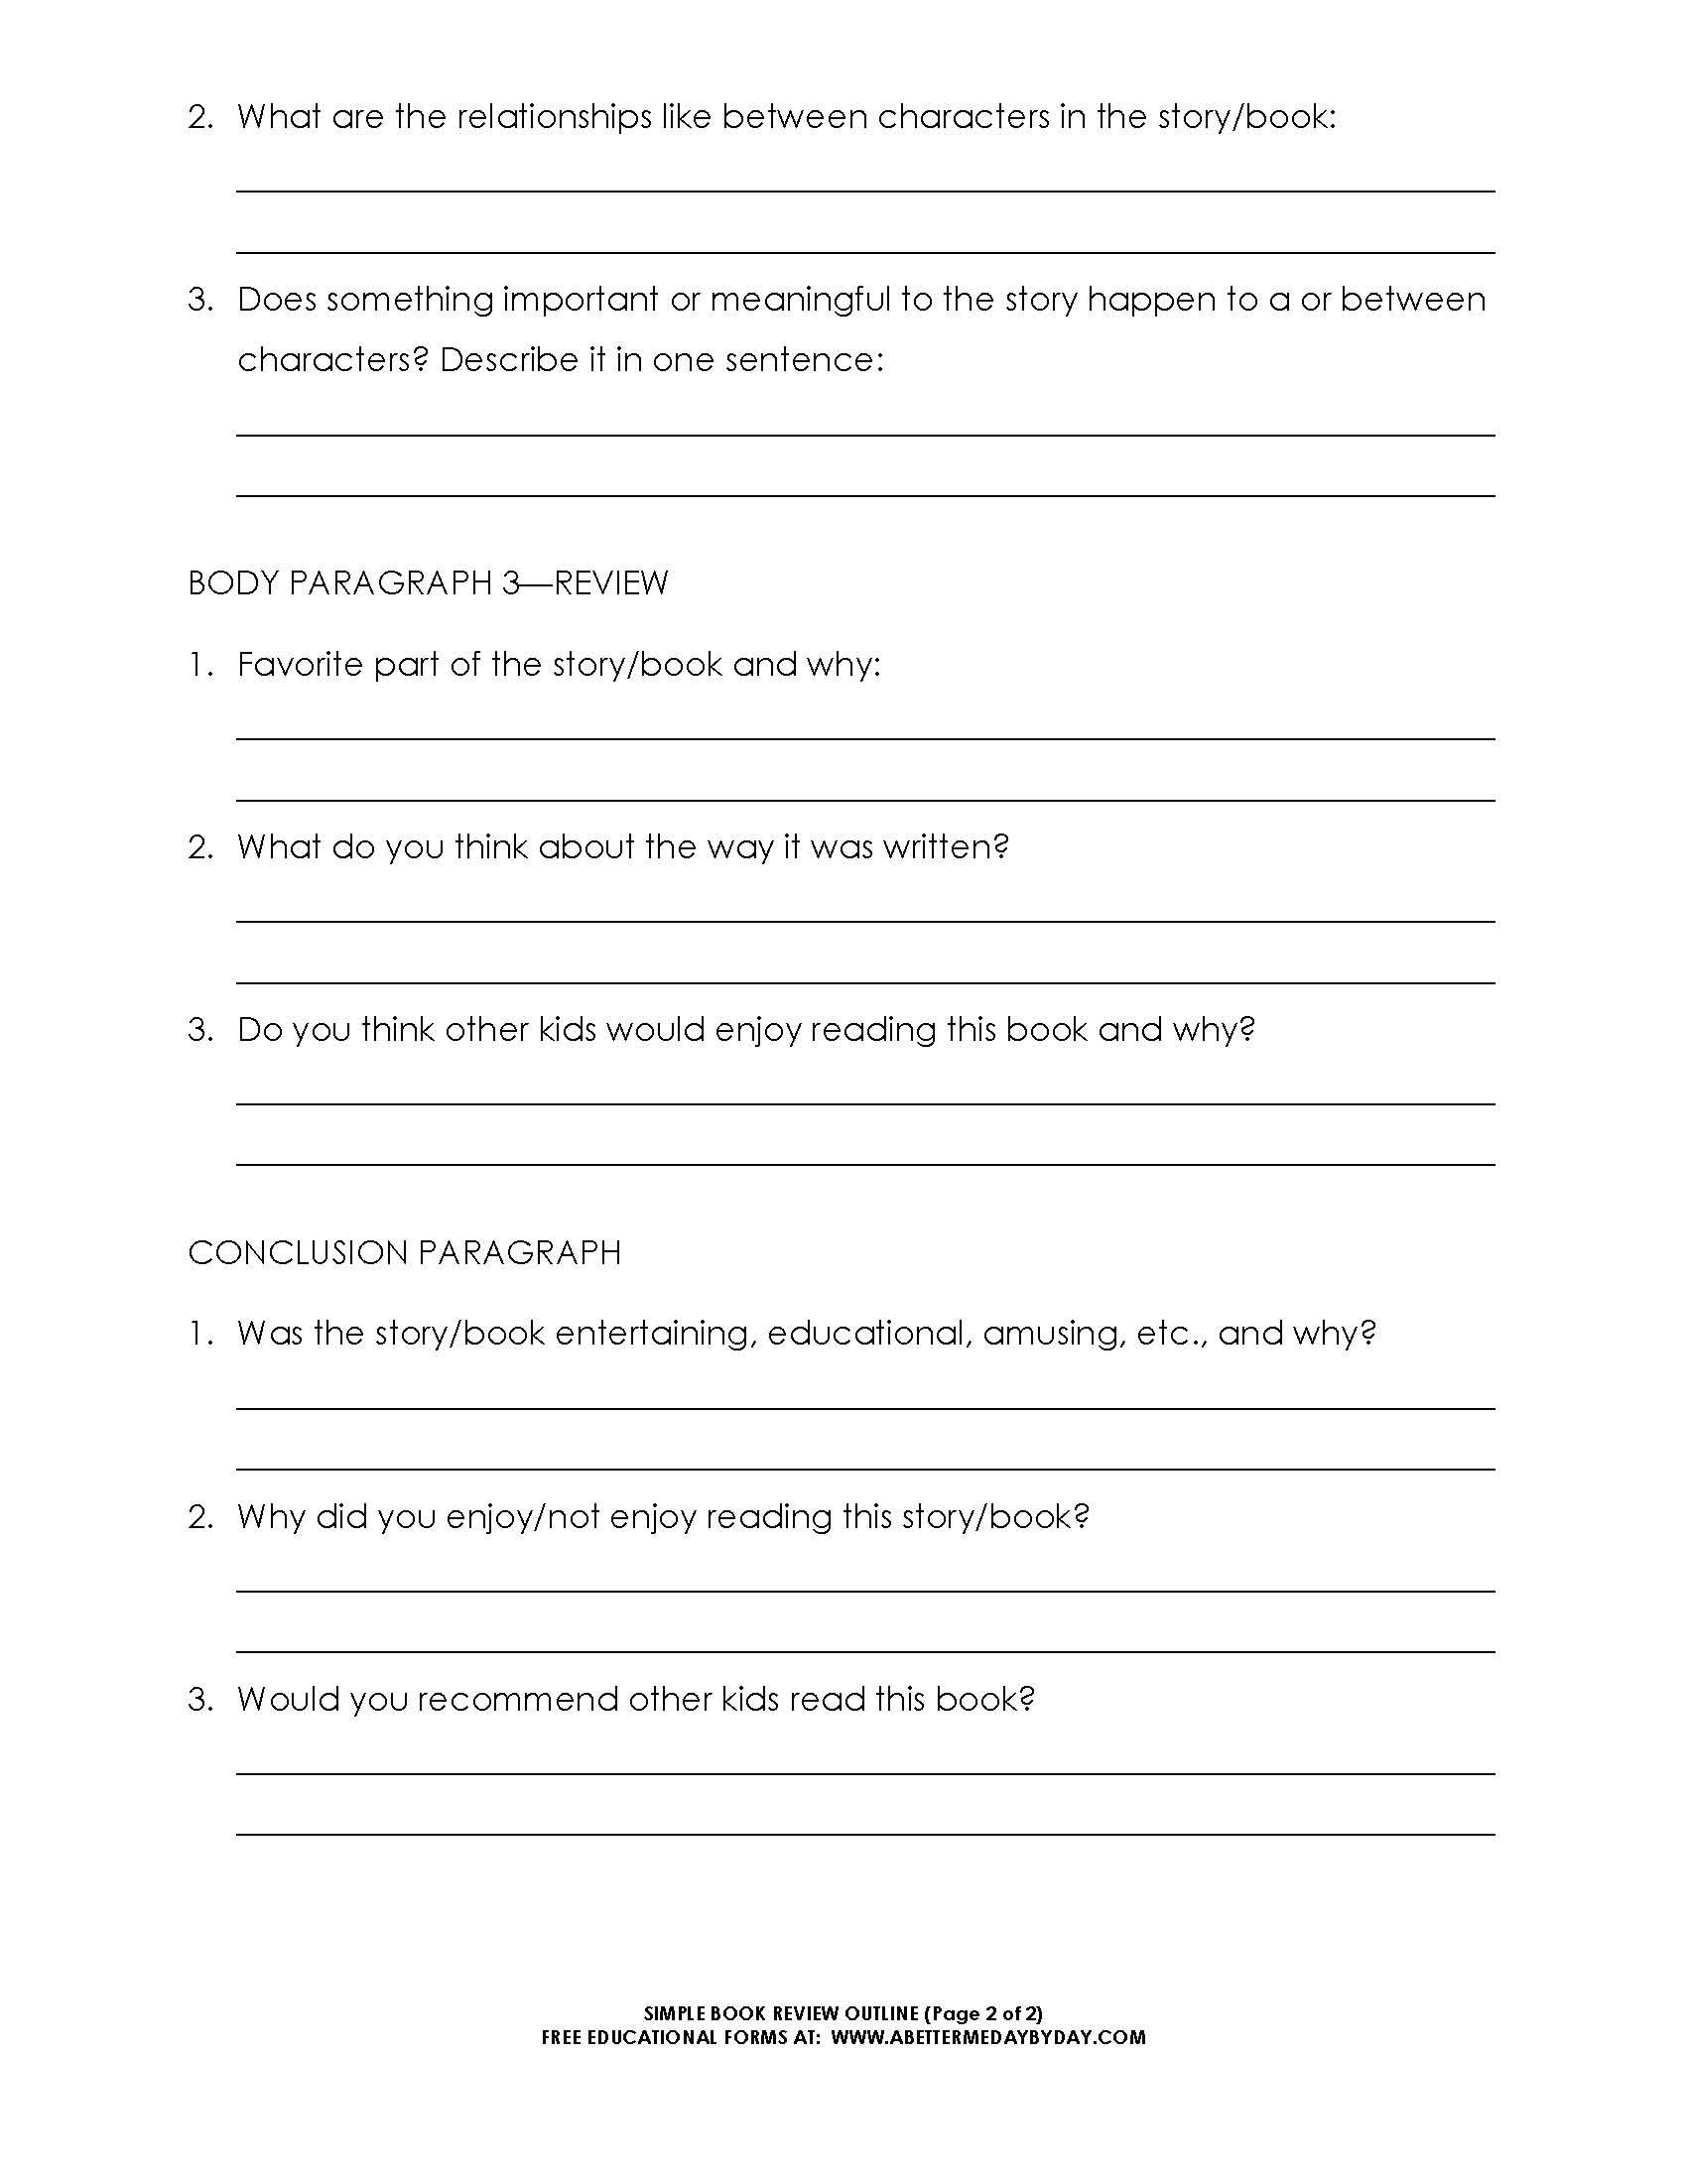 Free Simple 5 Paragraph Book Review Or Report Outline Form